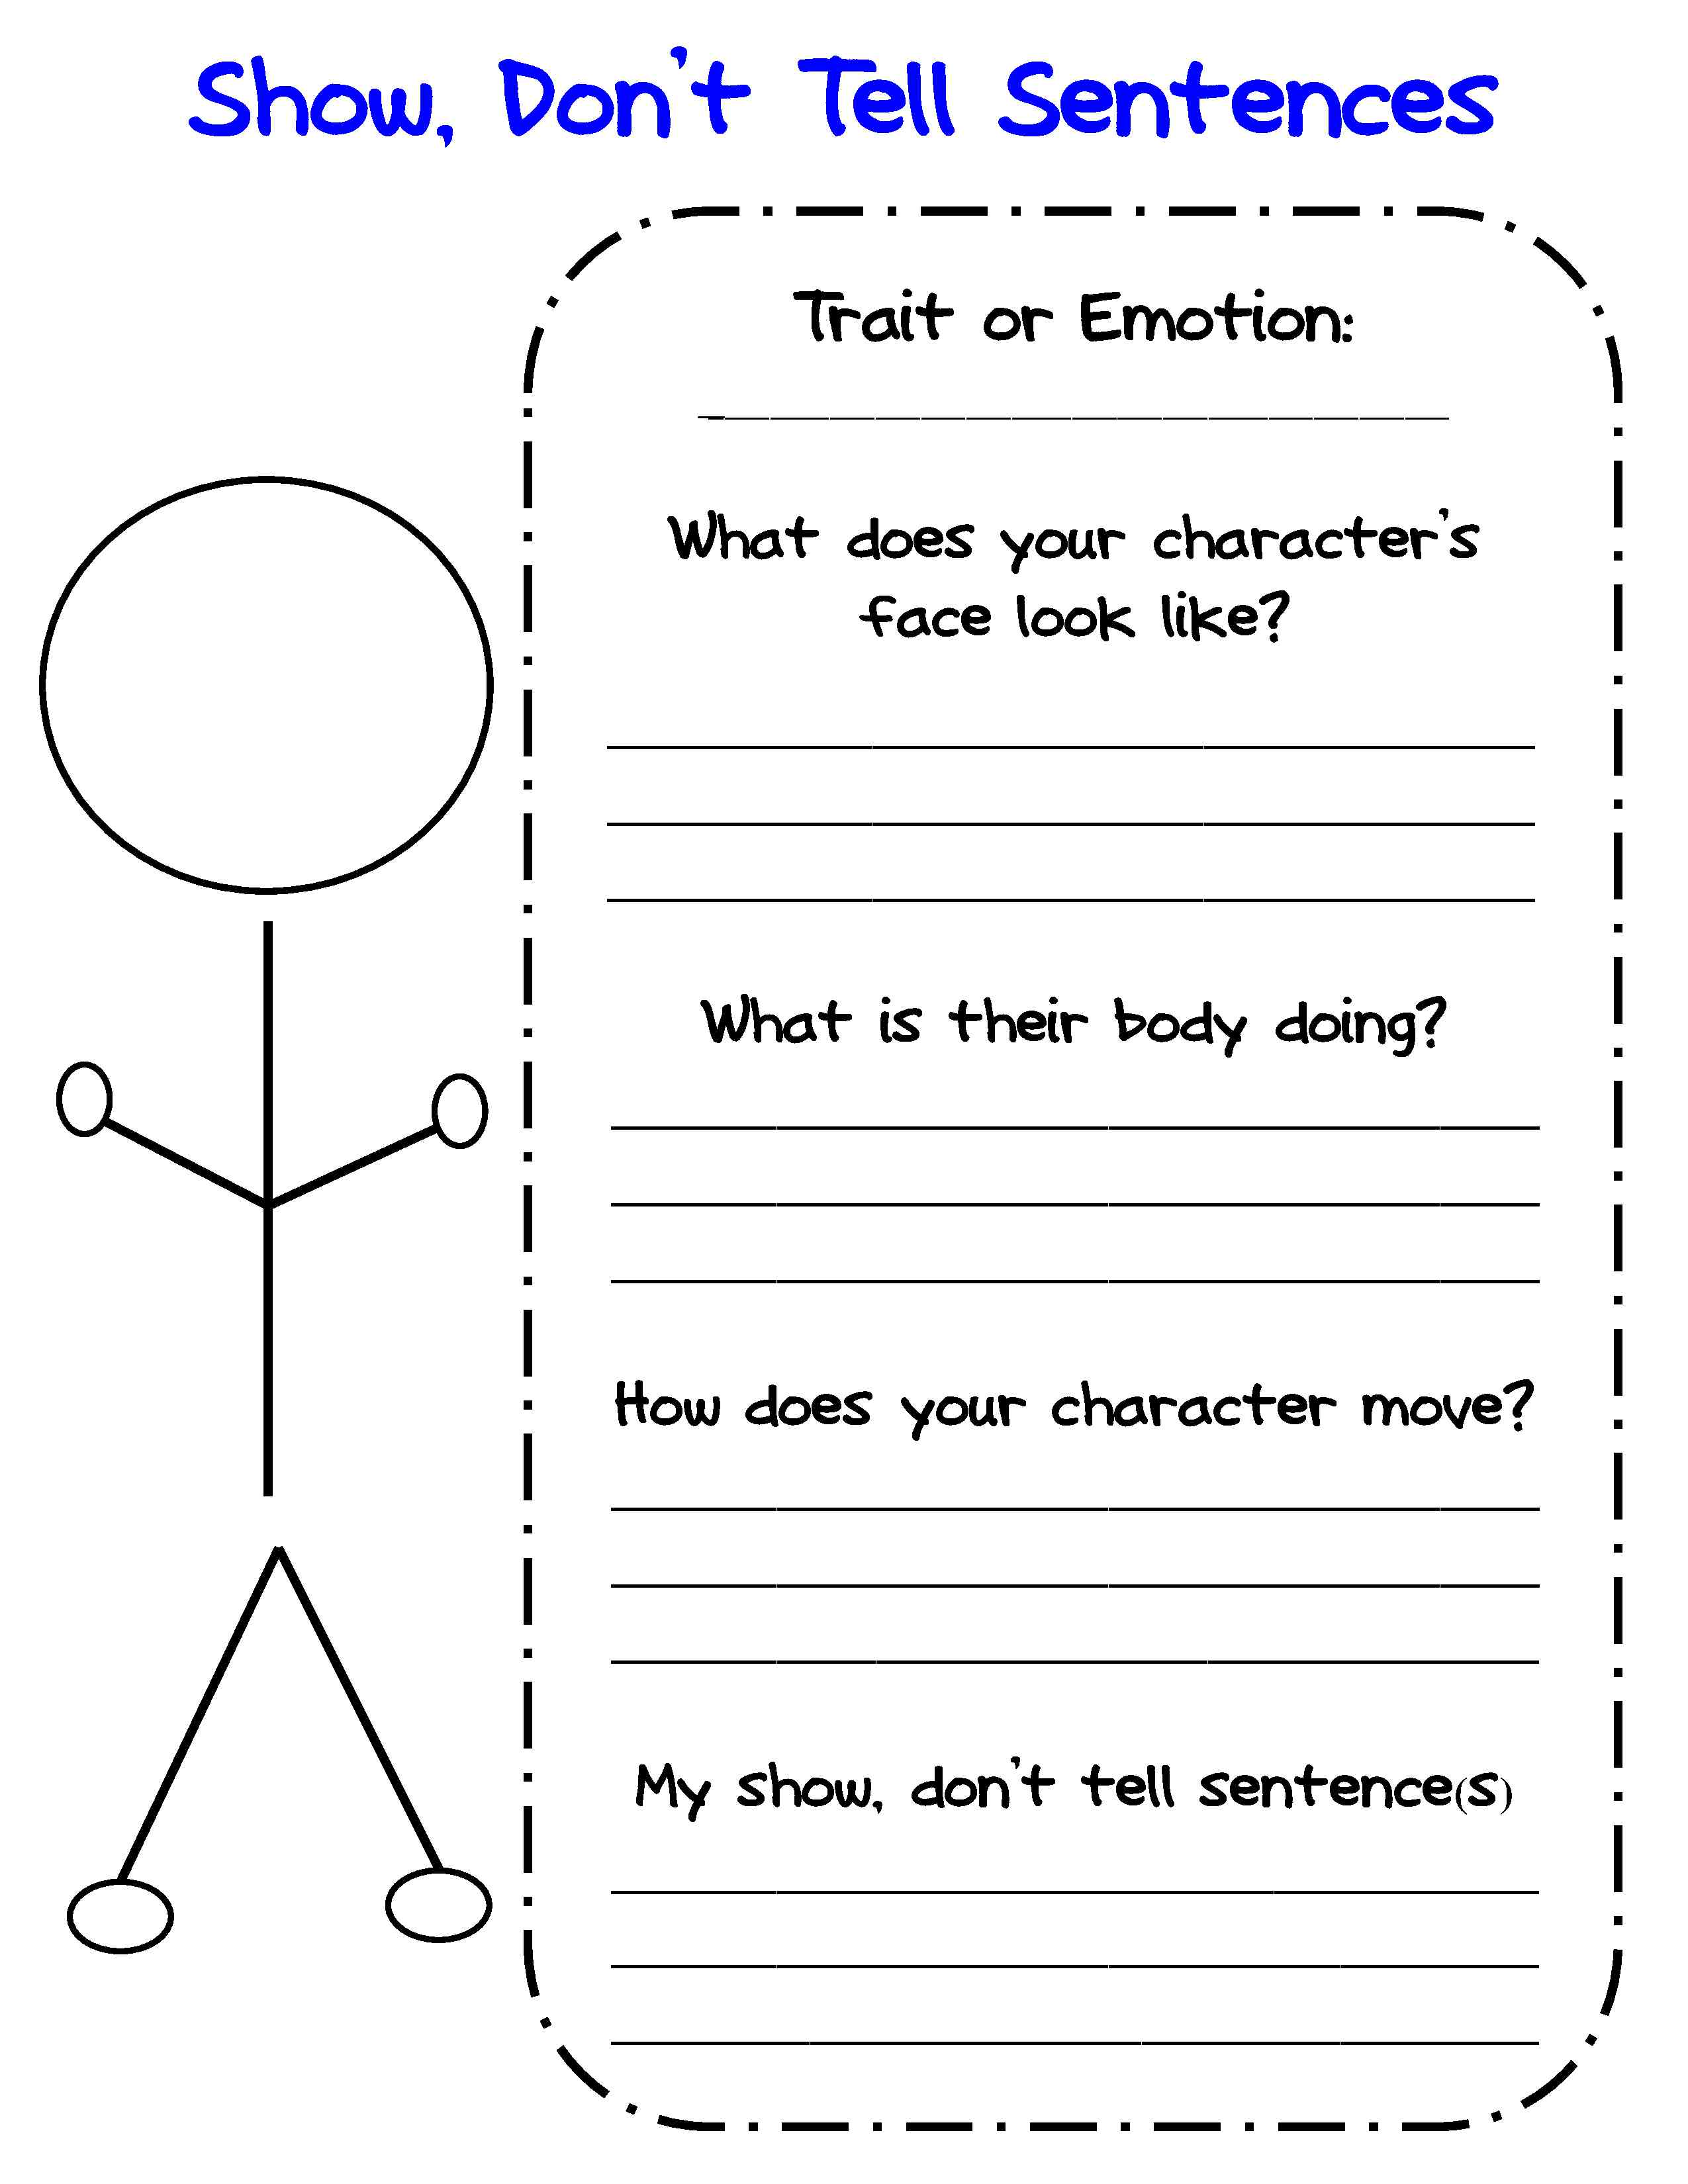 in addition Other Worksheet Category Page 501   worksheeto likewise Show and Tell Letter Q ly Show Don T Tell Worksheets Myscres also Show  Don't Tell detailed writing worksheet by Kaitie's Creations moreover Show Don T Tell Worksheets   Sanfranciscolife as well Show  Don't Tell  A Whiteboard Writing Lesson   Scholastic additionally Writing  Show Don't Tell Practice Worksheets  Free Packet in addition 001 Personal Essay Graphic Organizer Ex le Show Dont Tell likewise Show Don't Tell  7 No Prep Worksheets in 1  by Fine Wein   TpT further Writing  Show  Don't Tell  Pushing Up the Sky Graphic Organizer for besides  also Sensory Details Worksheet   fadeintofantasy moreover Show  Don't Tell » Society of Young Inklings further  in addition Practice Using Scales 2 World Map Worksheets Me On The Activity Year moreover . on show don t tell worksheet